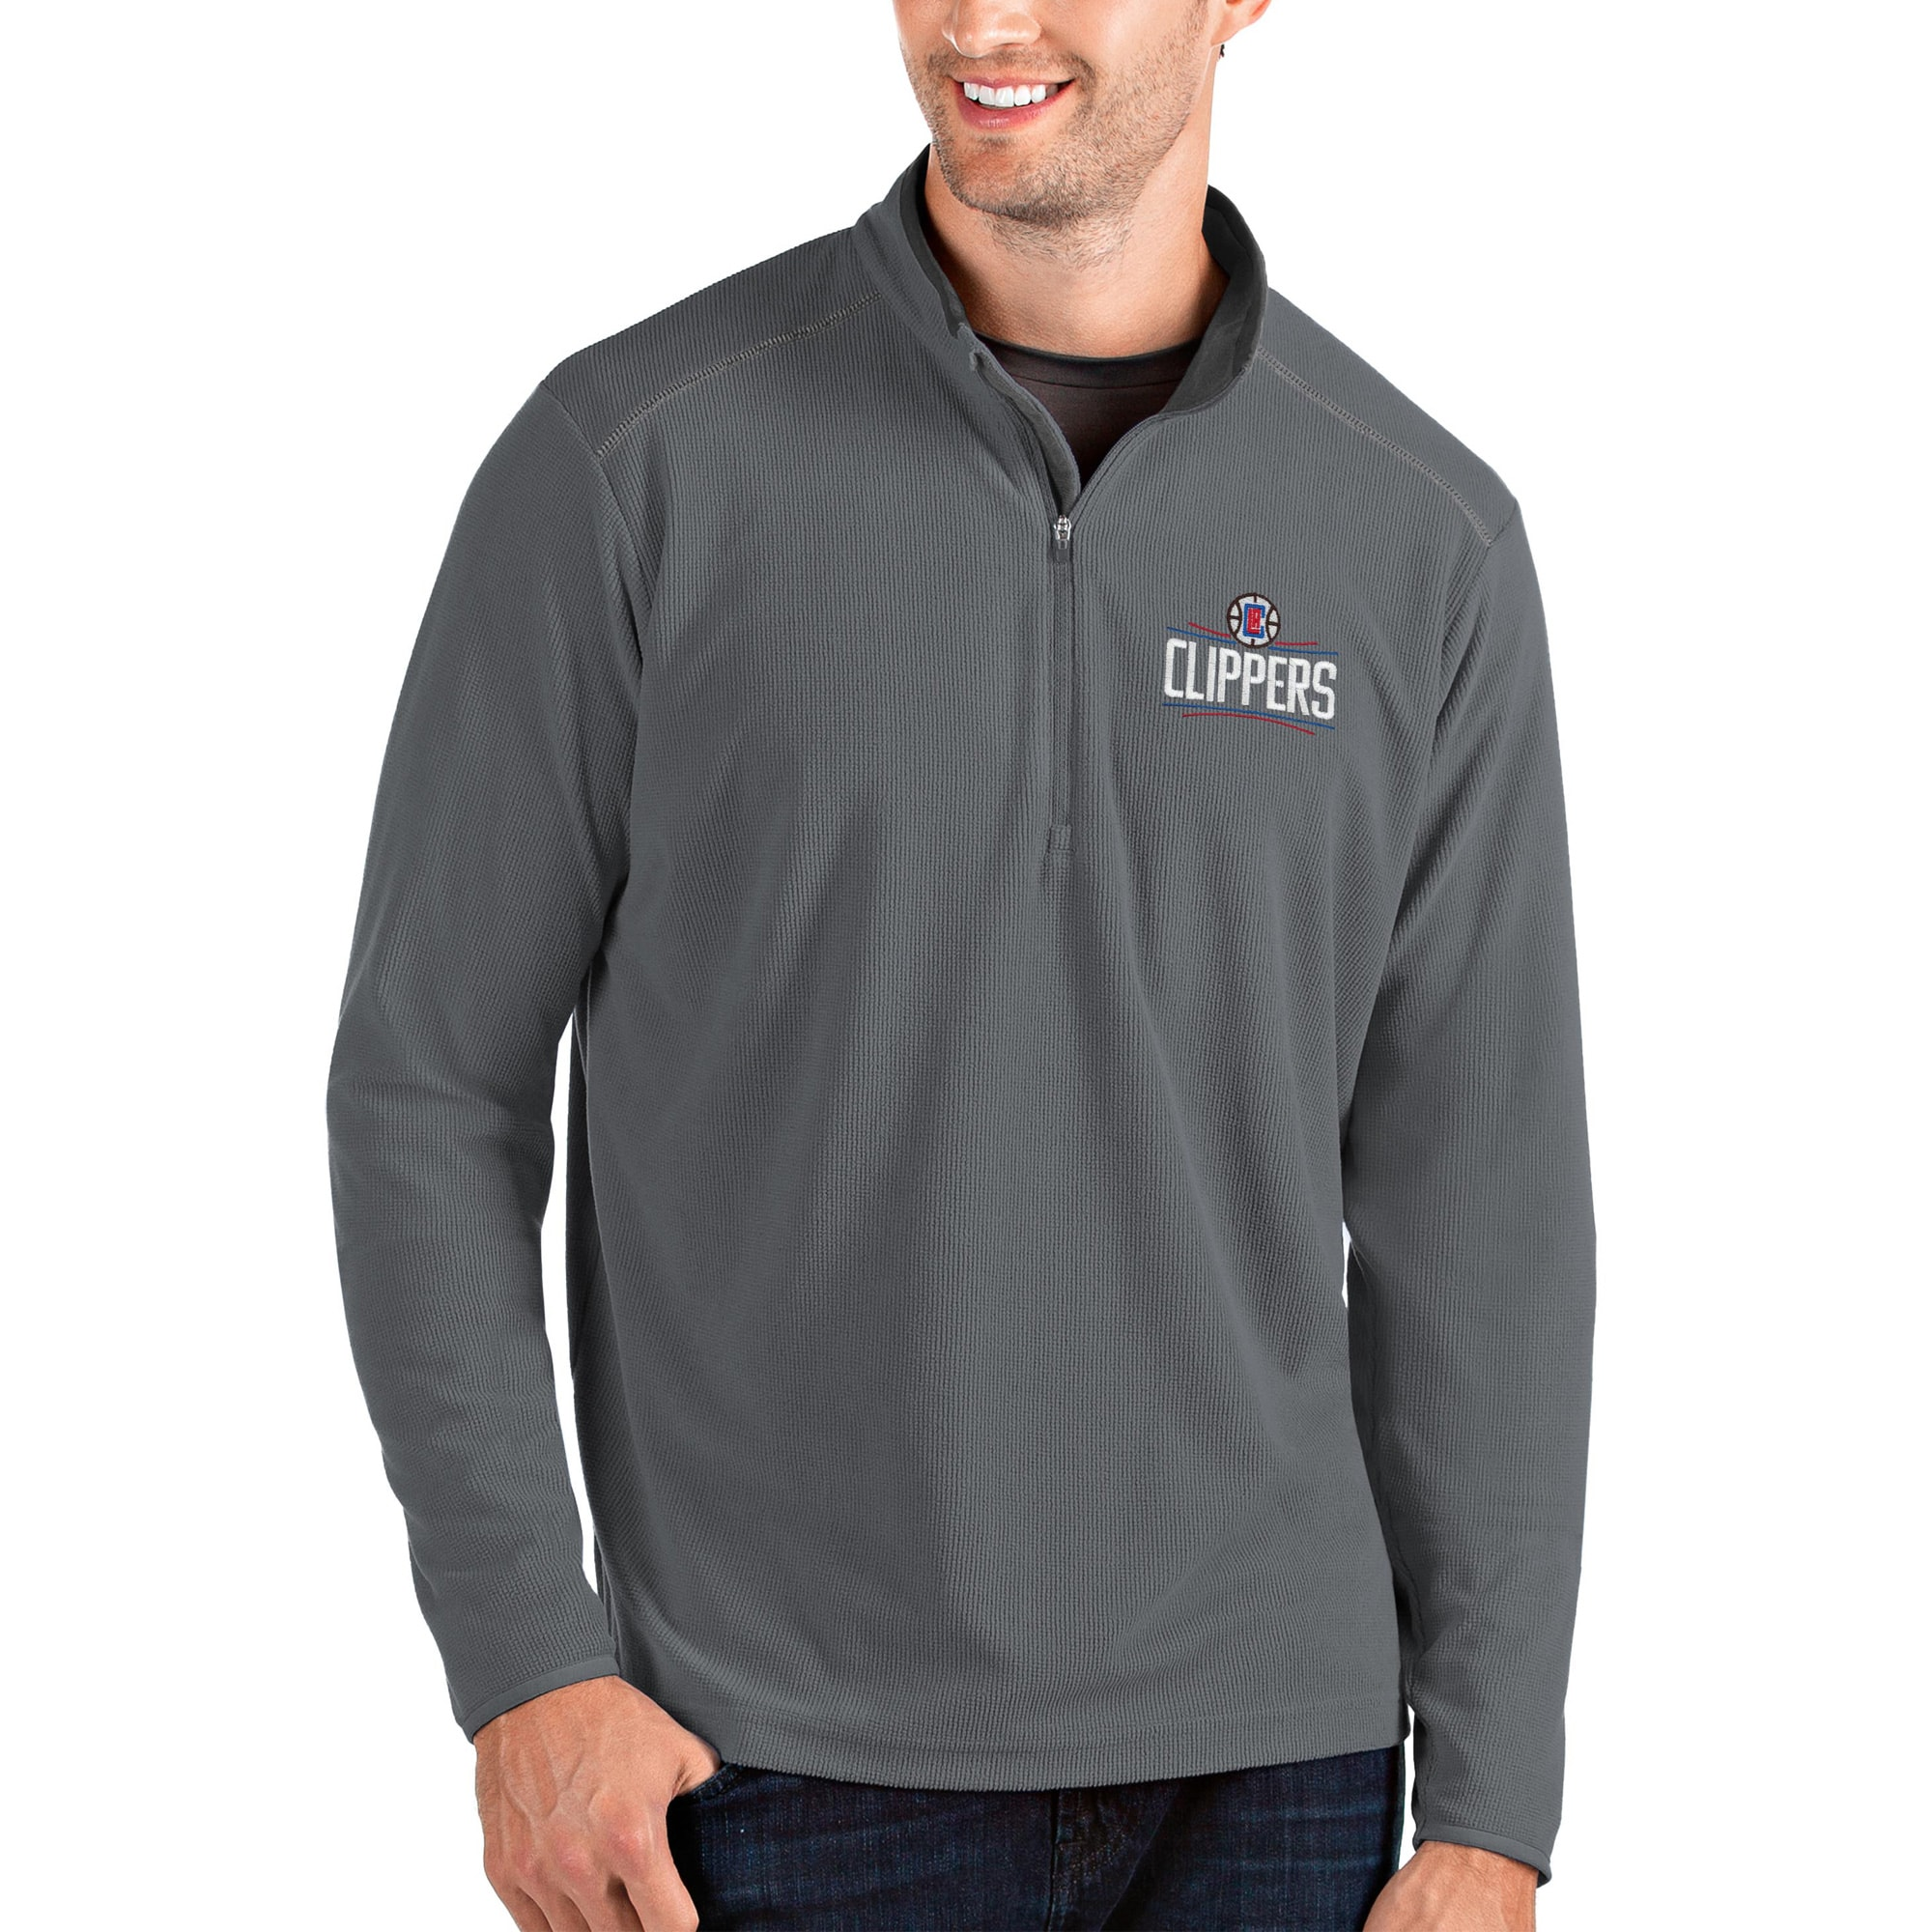 LA Clippers Antigua Glacier Quarter-Zip Pullover Jacket - Charcoal/Gray